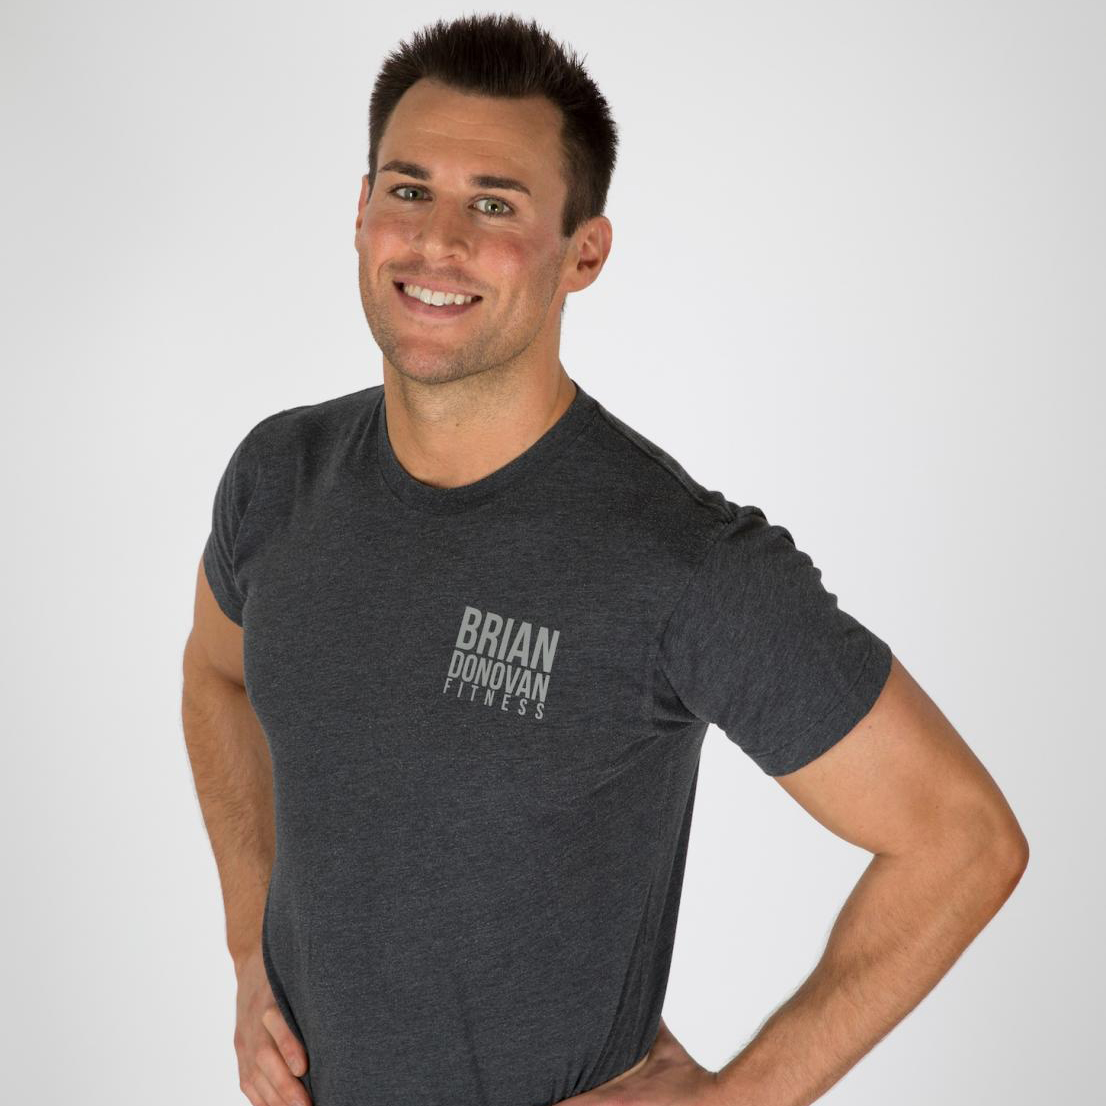 Personal Trainer Brian Donovan 1